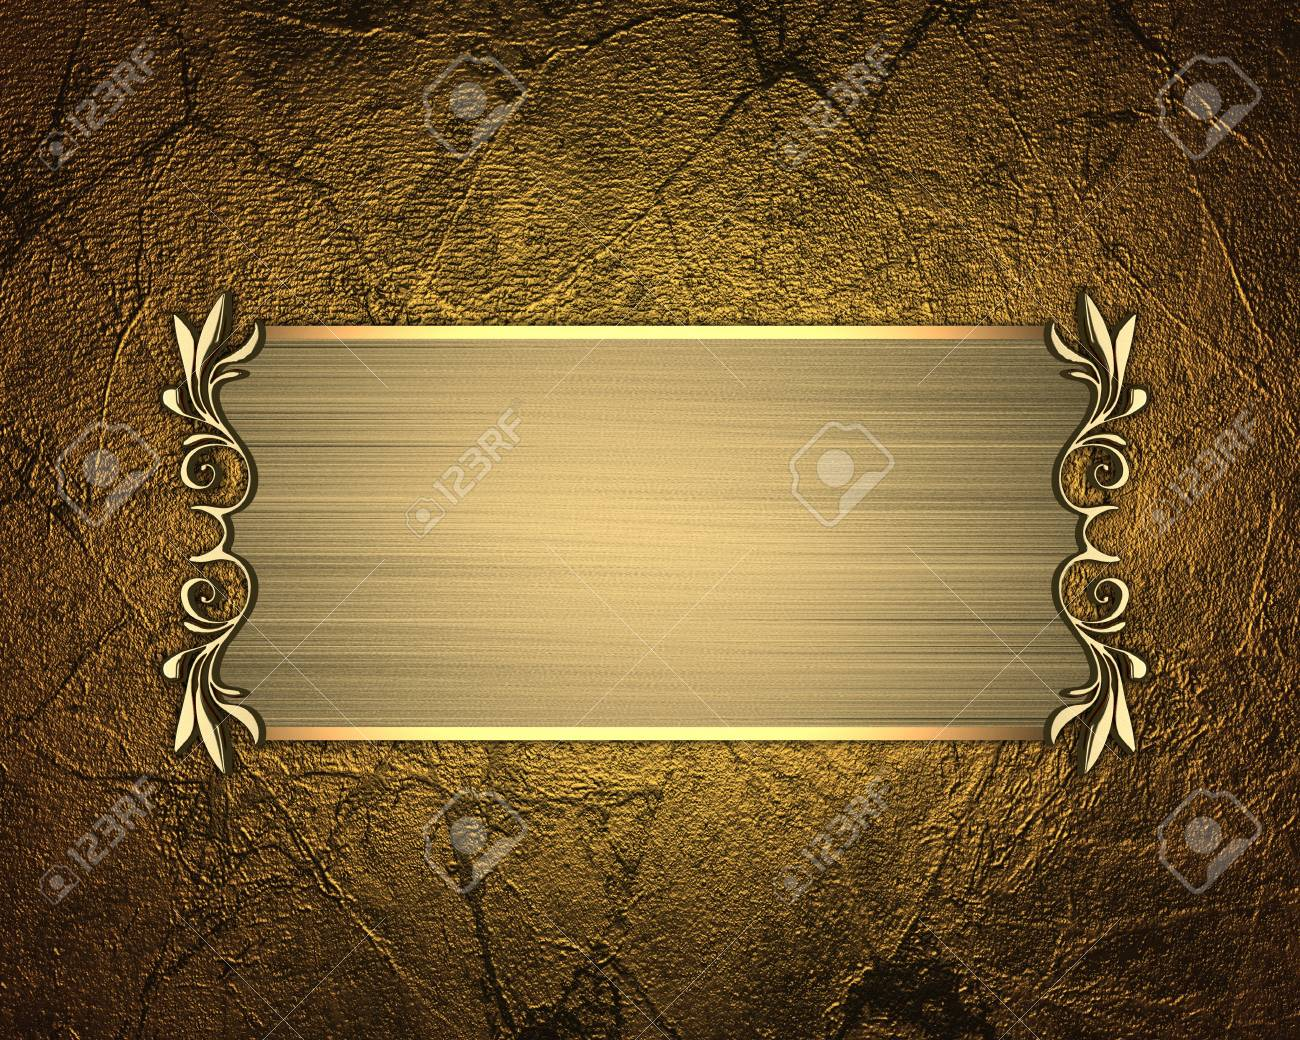 the template for the inscription gold background with gold